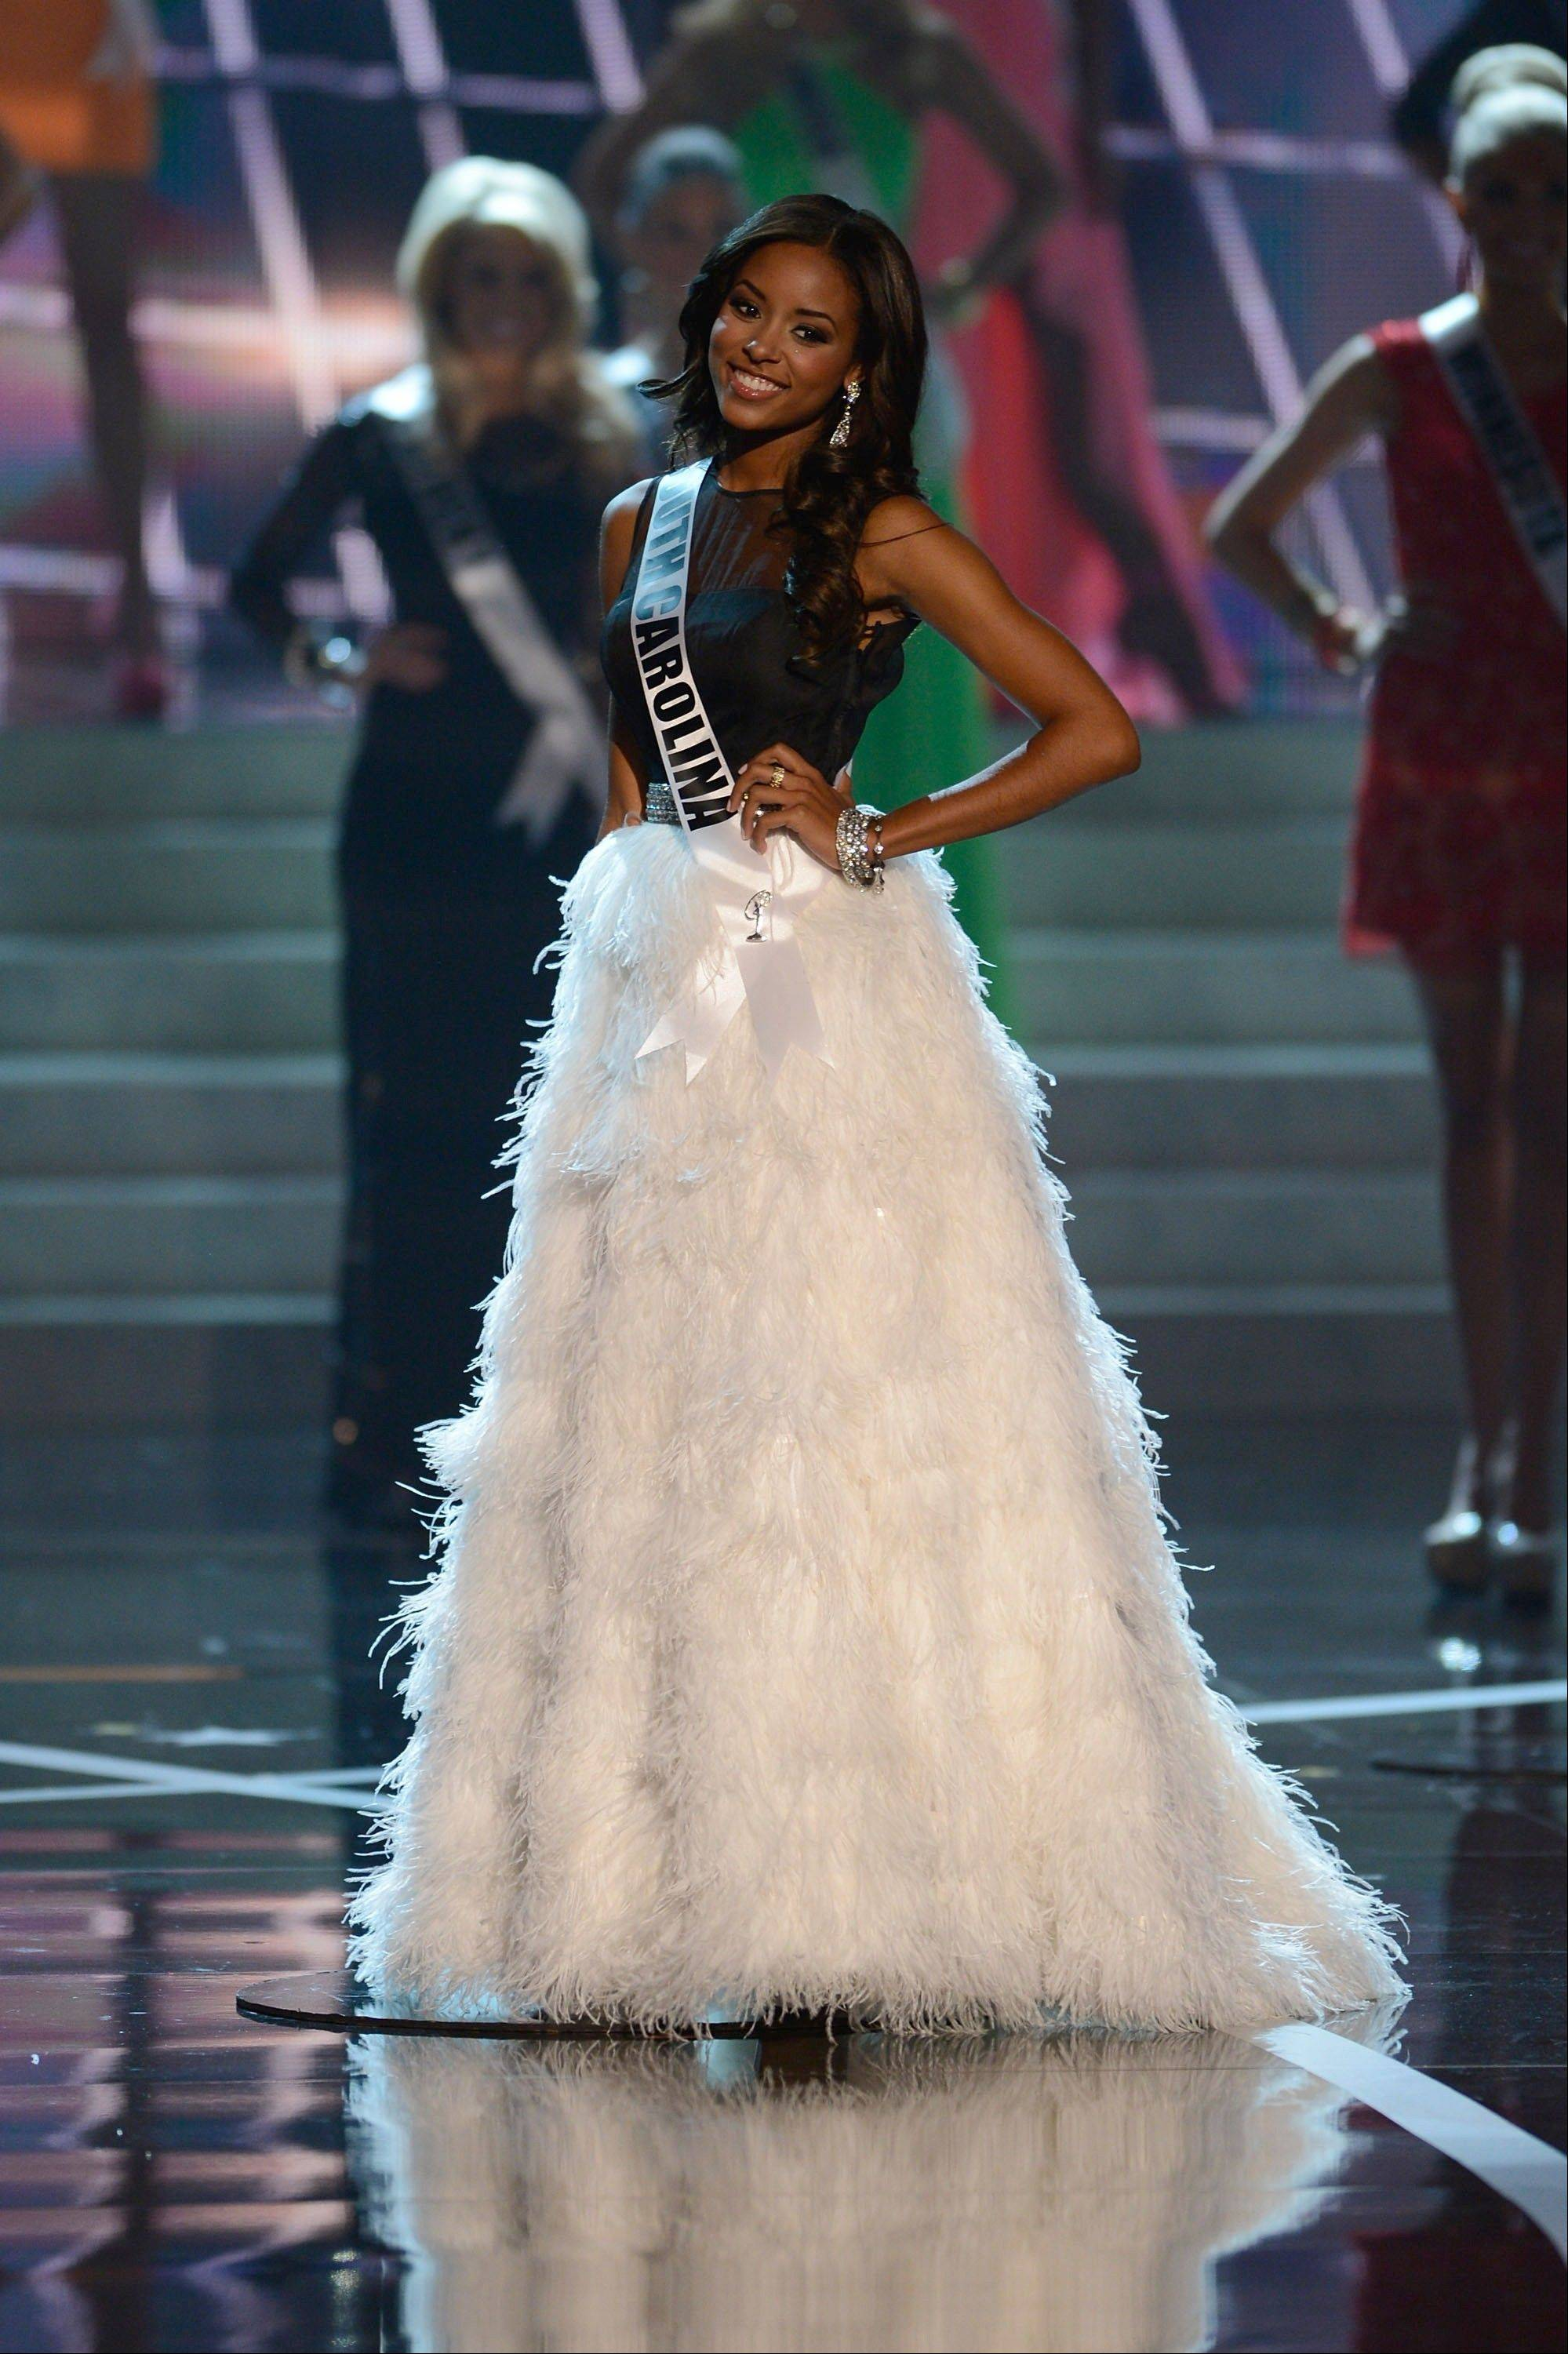 Miss South Carolina Megan Pickney walks the runway during the introductions of the Miss USA 2013 pageant, Sunday, June 16, 2013, in Las Vegas.